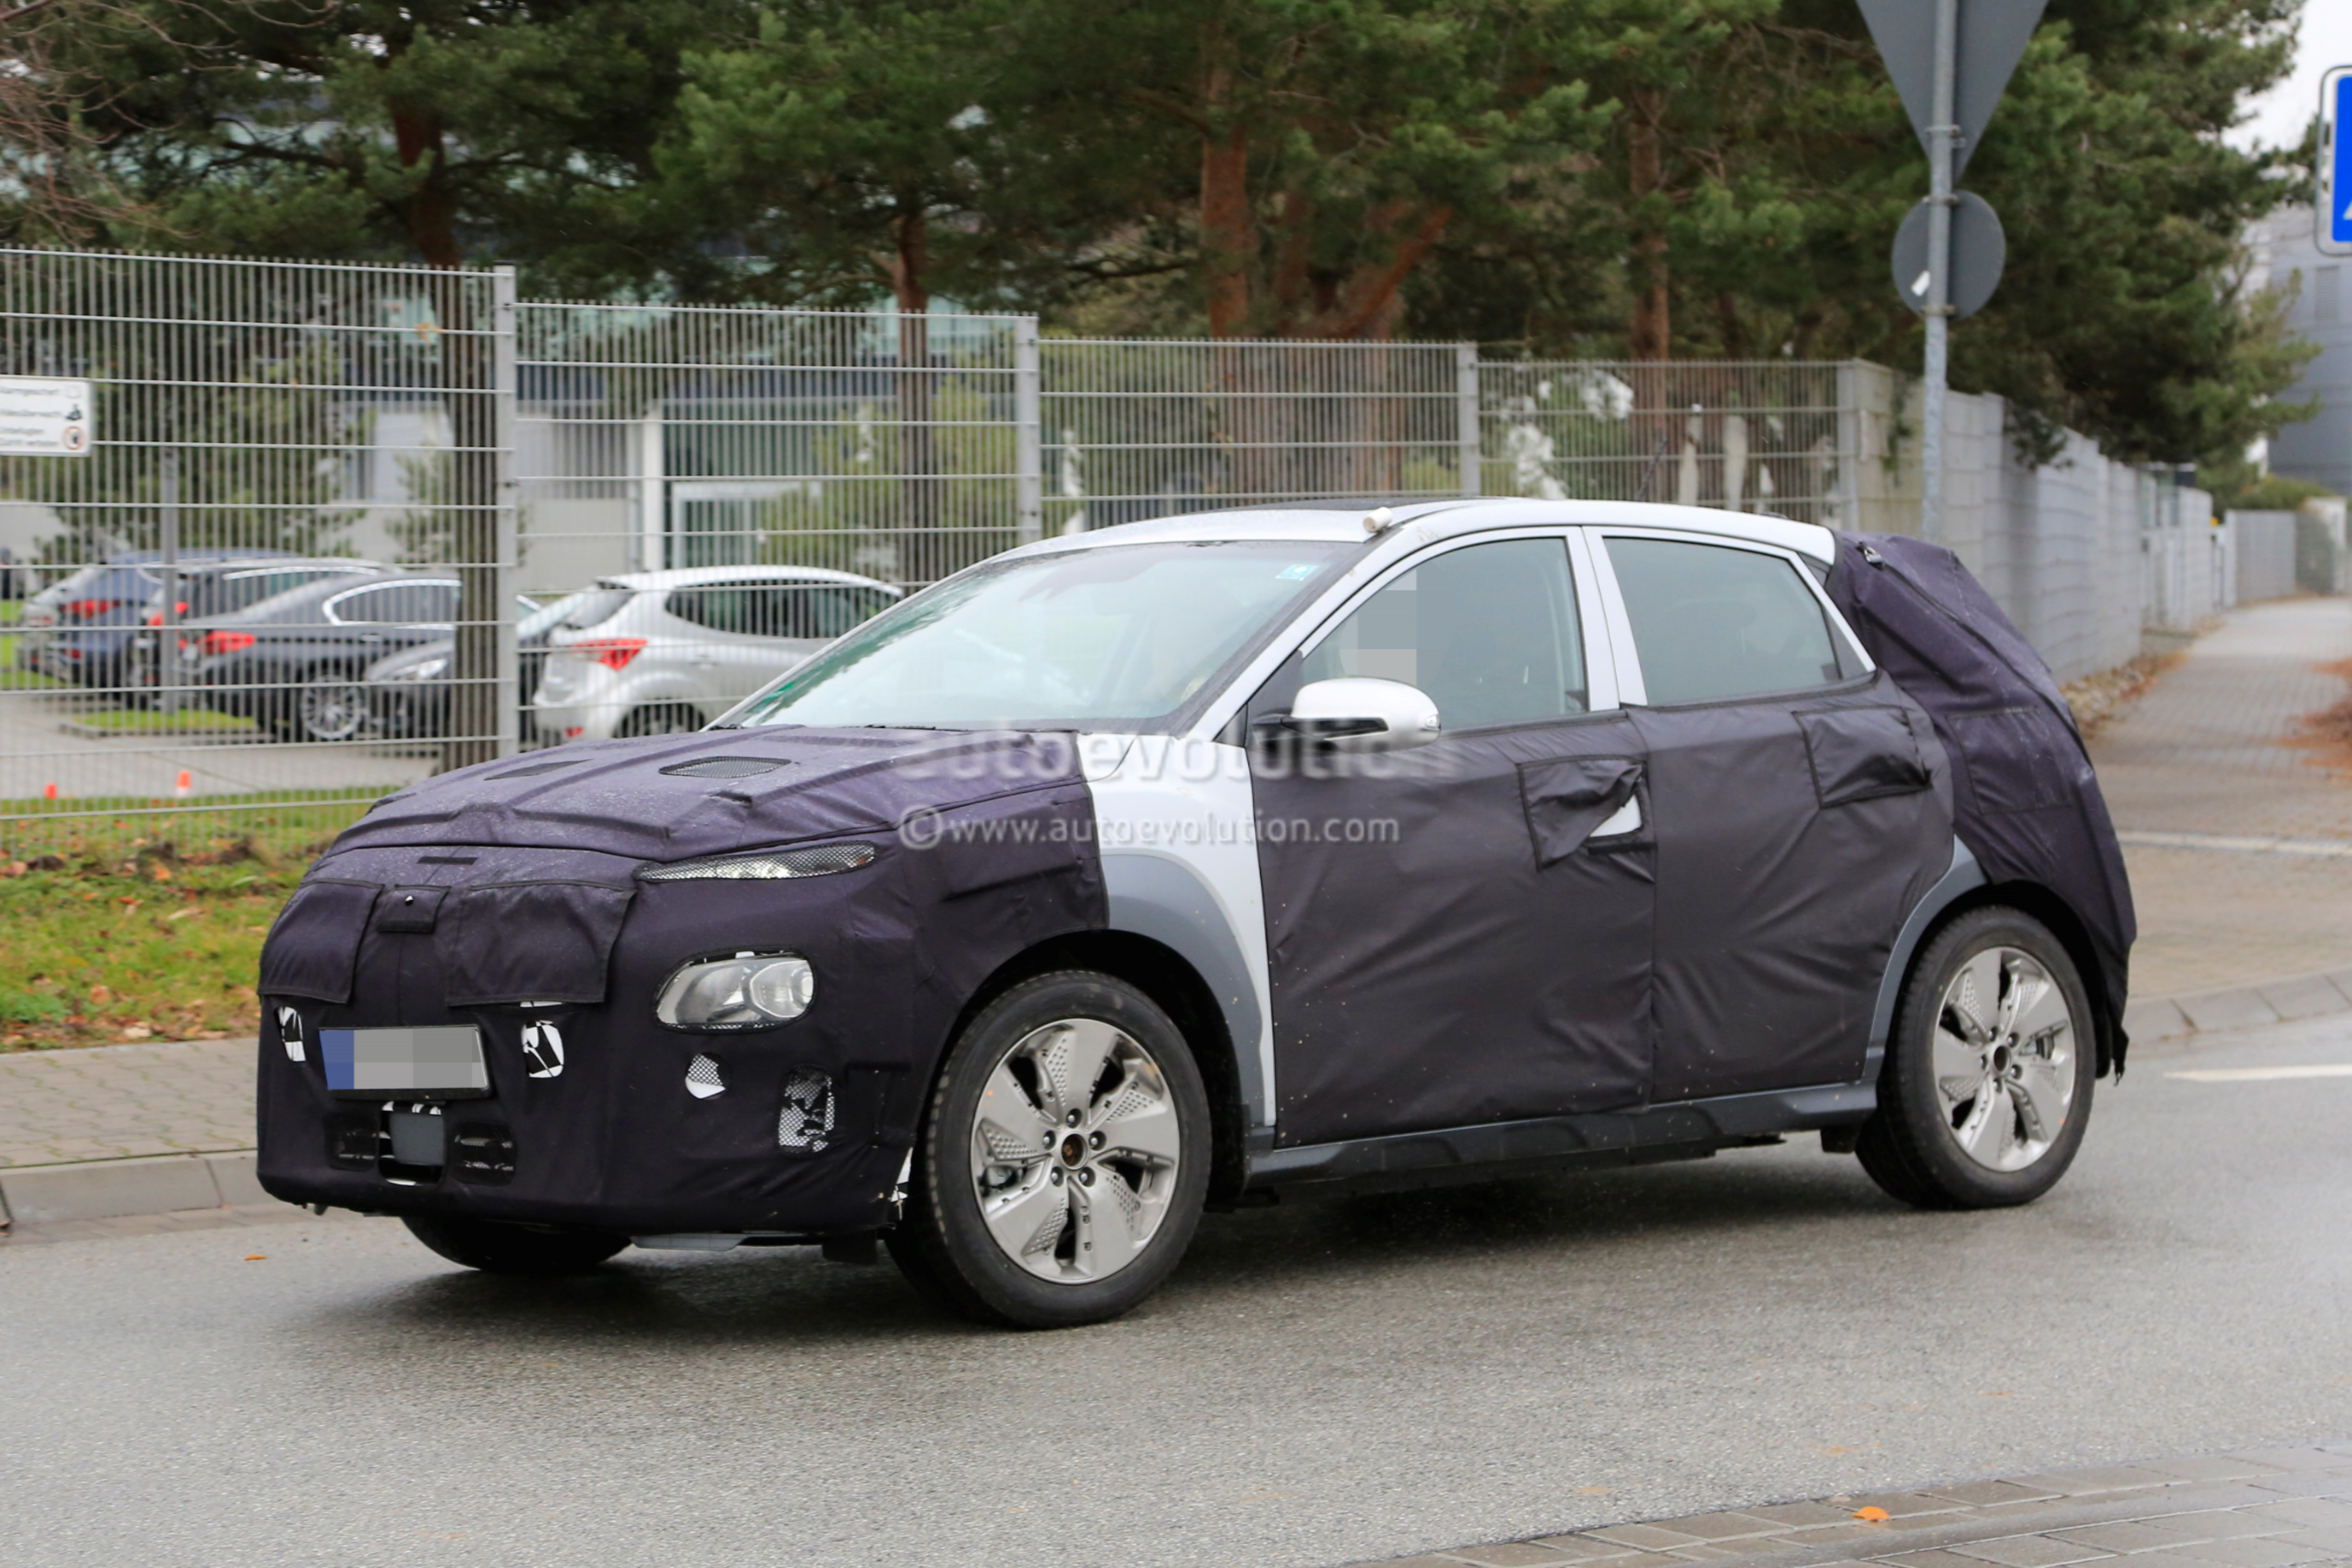 spyshots 2018 hyundai kona electric suv caught testing in germany autoevolution. Black Bedroom Furniture Sets. Home Design Ideas